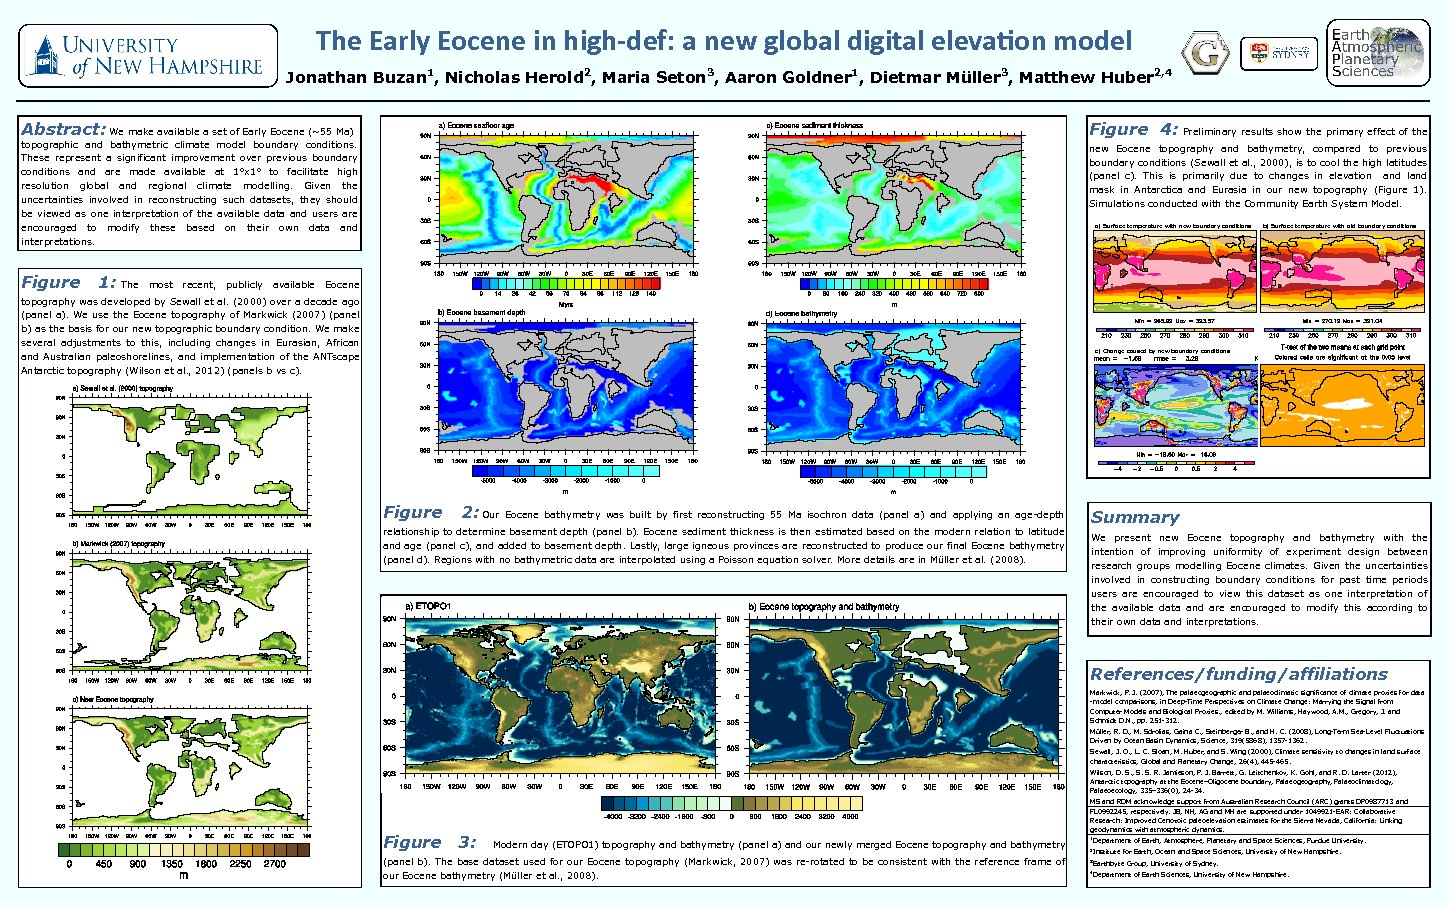 The Early Eocene In High-Def: A New Global Digital Elevation Model by heroldn